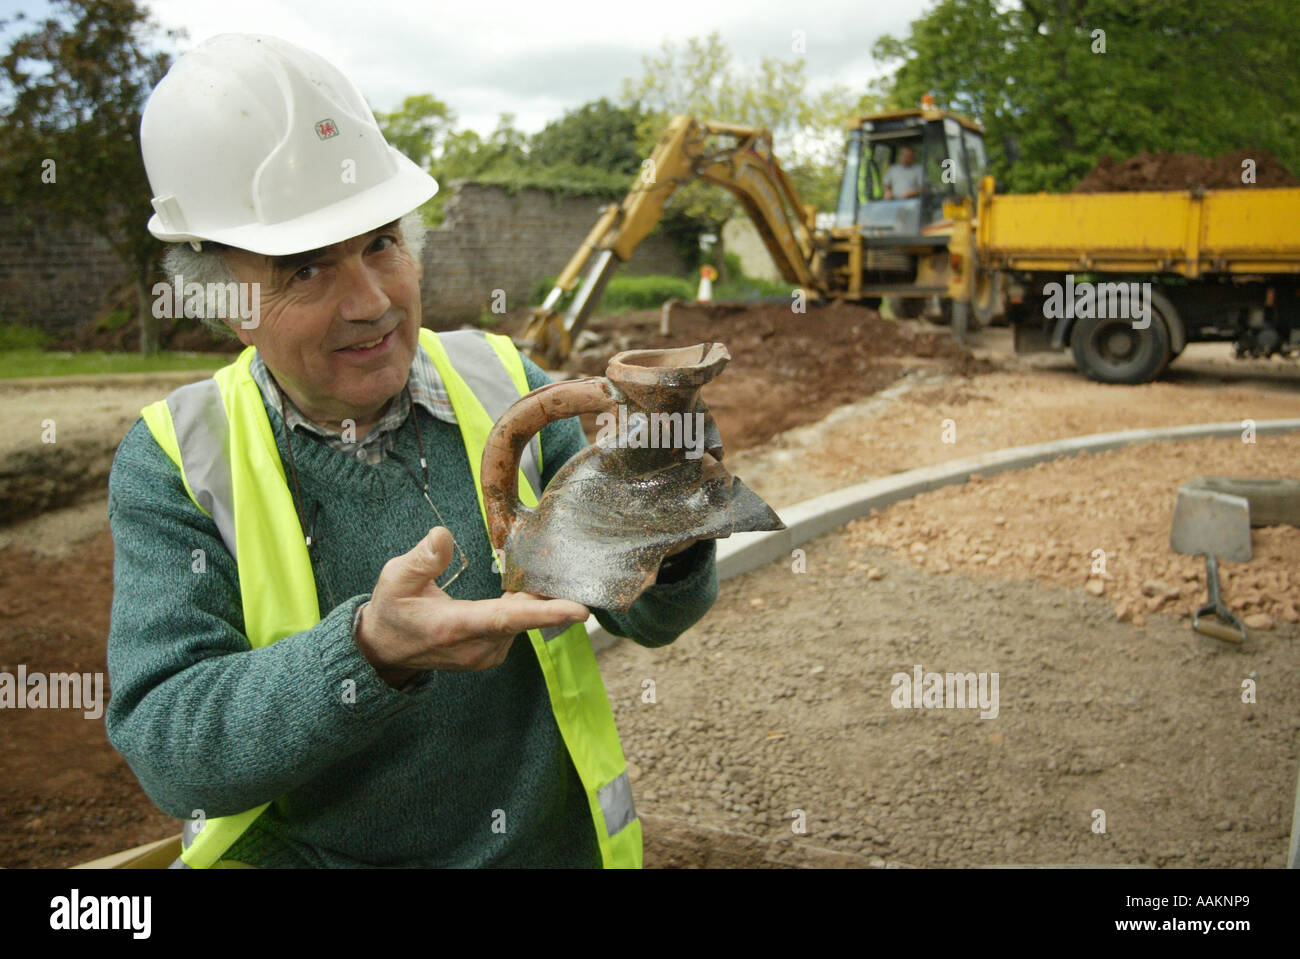 A ARCHAELOGIST SHOWS SOME ARTIFACTS FOUND ON A DIG IN MONMOUTH, WALES, UK. Stock Photo